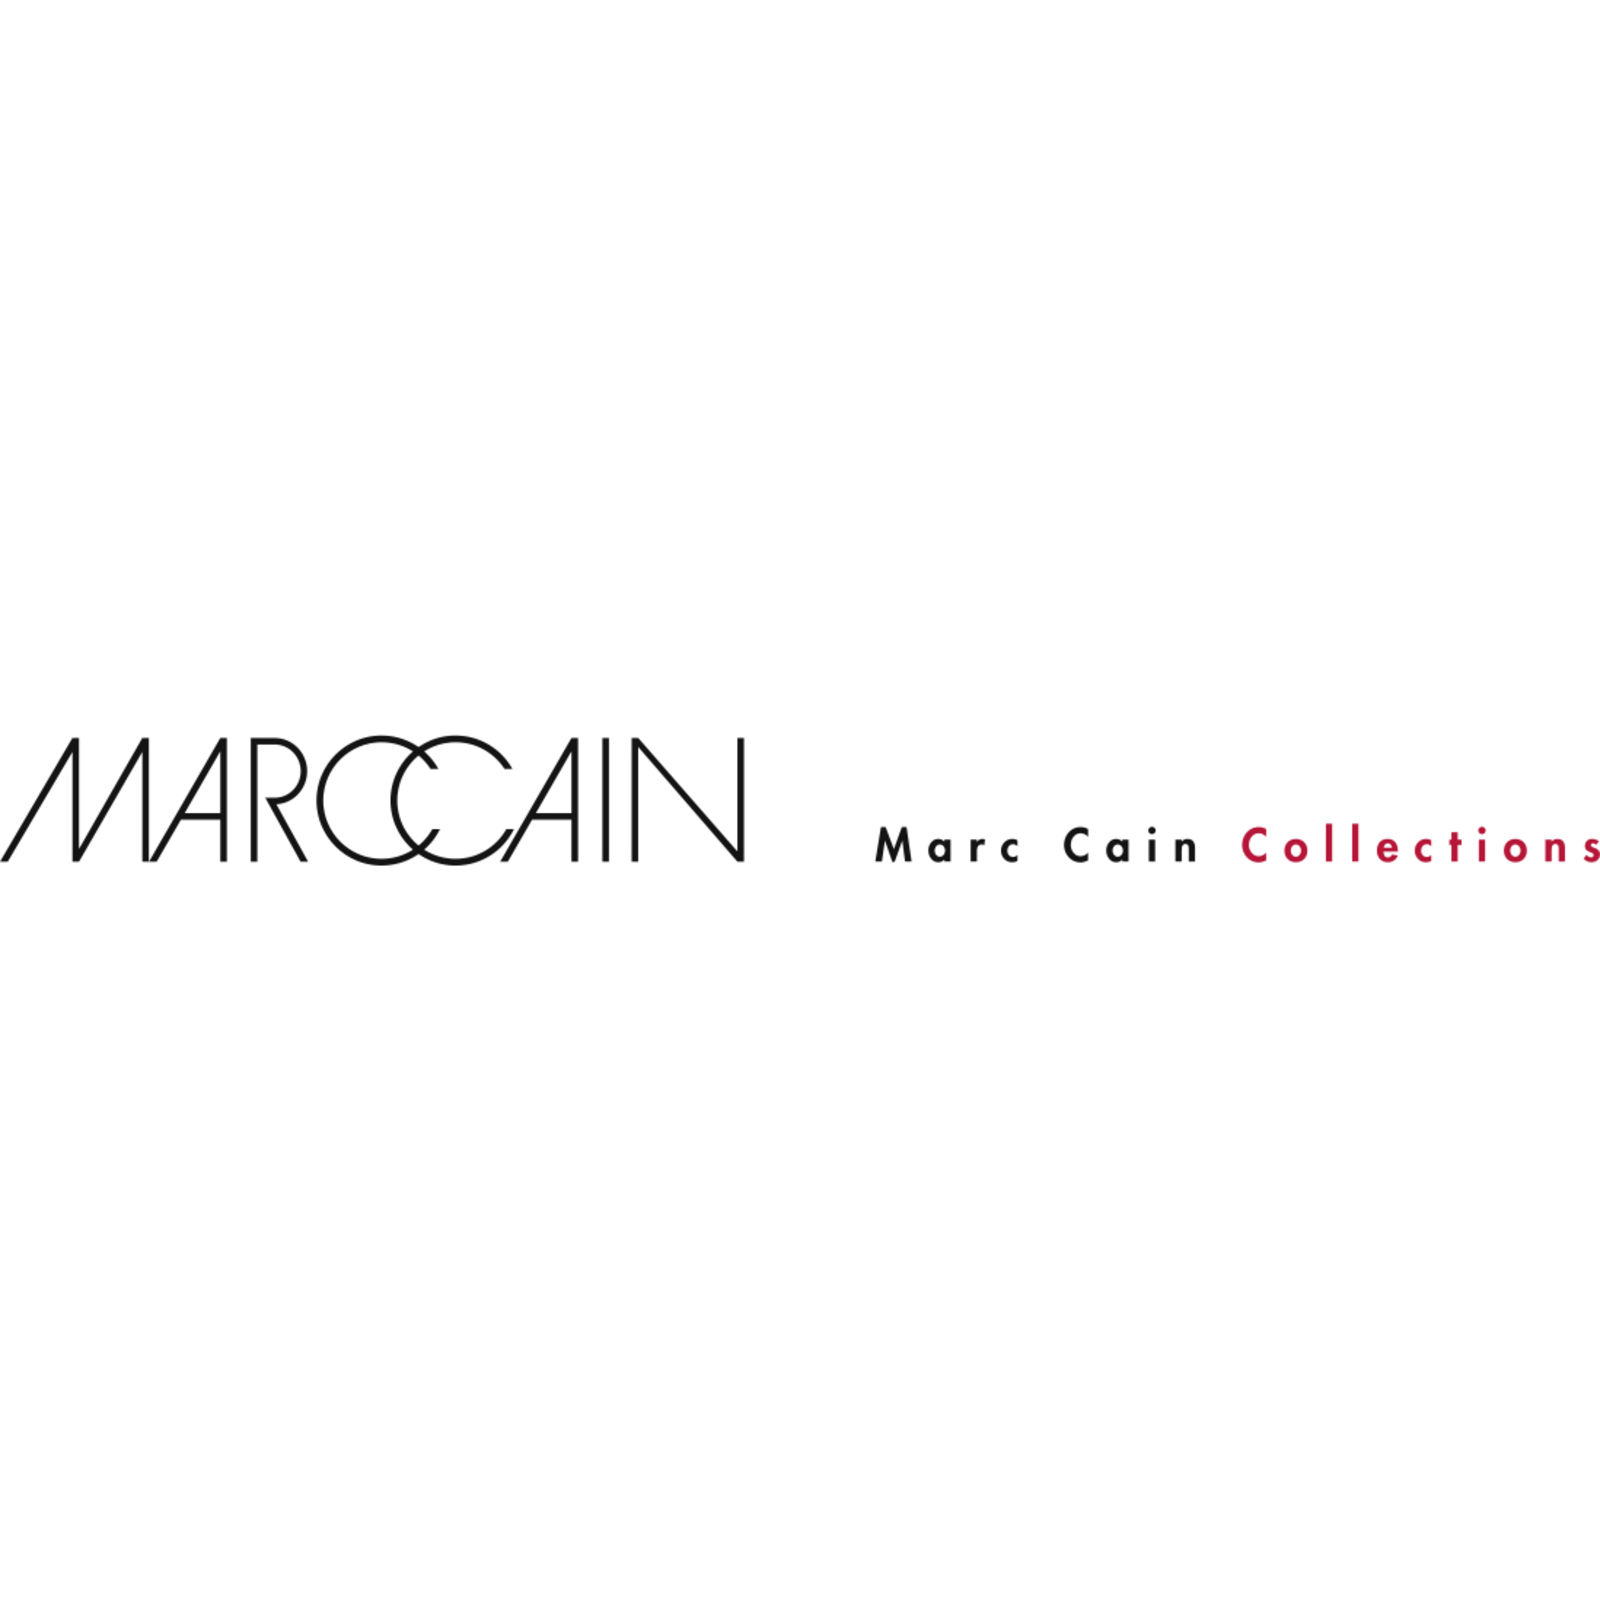 MARC CAIN COLLECTIONS (Afbeelding 1)